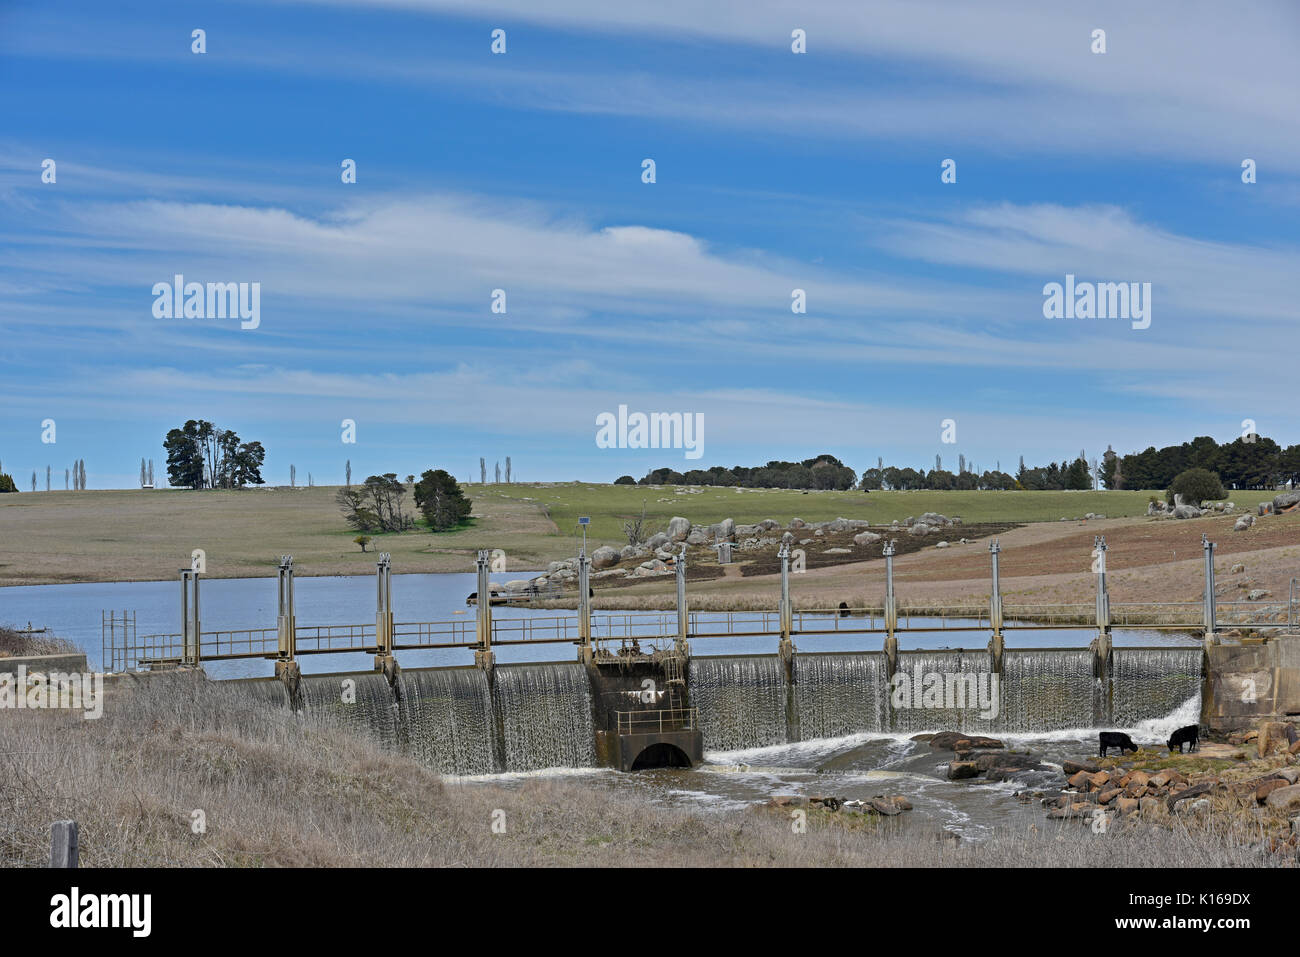 Beardy River, a perennial river that is part of the Murray–Darling basin, with it's dam and weir supplies water to Glen Innes in New England, NSW - Stock Image